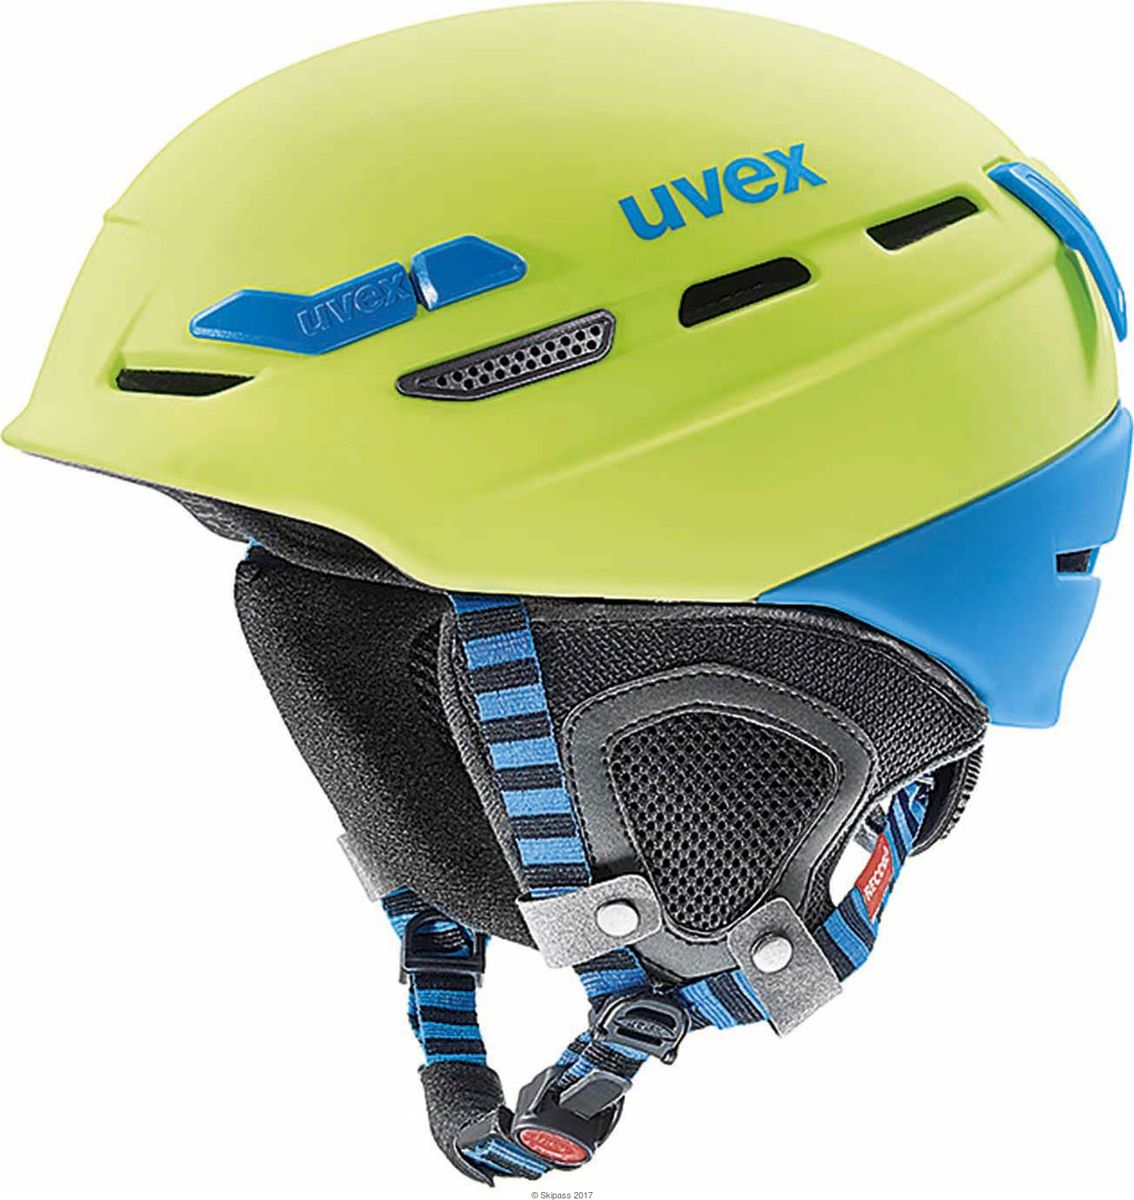 Шлем горнолыжный Uvex P.8000 tour Helmet, цвет: лайм, синий матовый. Размер M/L pu s5 stylish flip open pu case w stand card slot for samsung galaxy s5 red